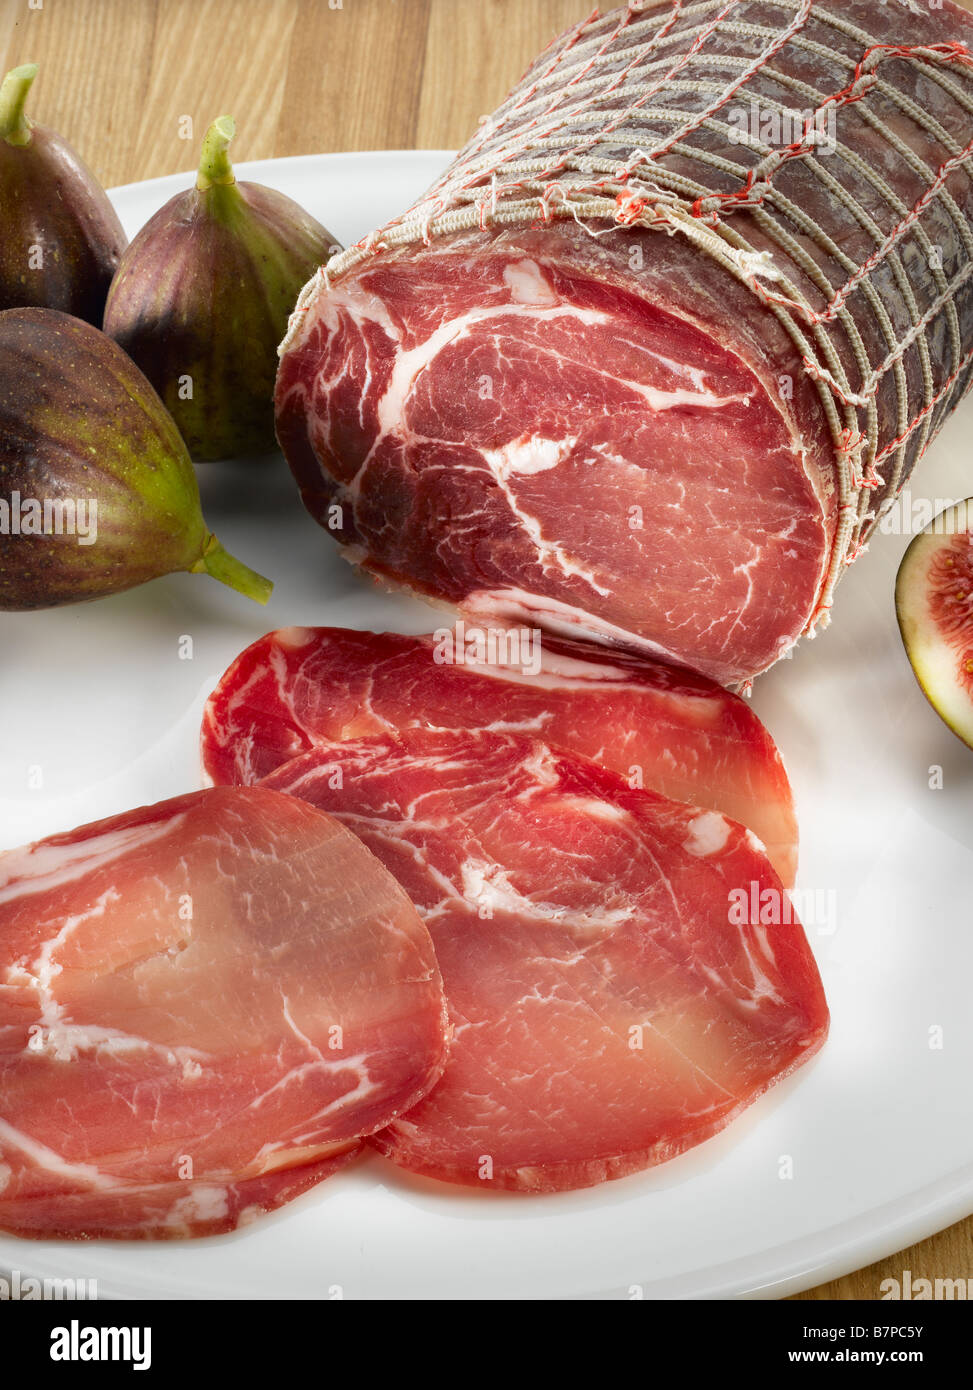 Italian Coppa Sausage Sliced Stock Photo Alamy